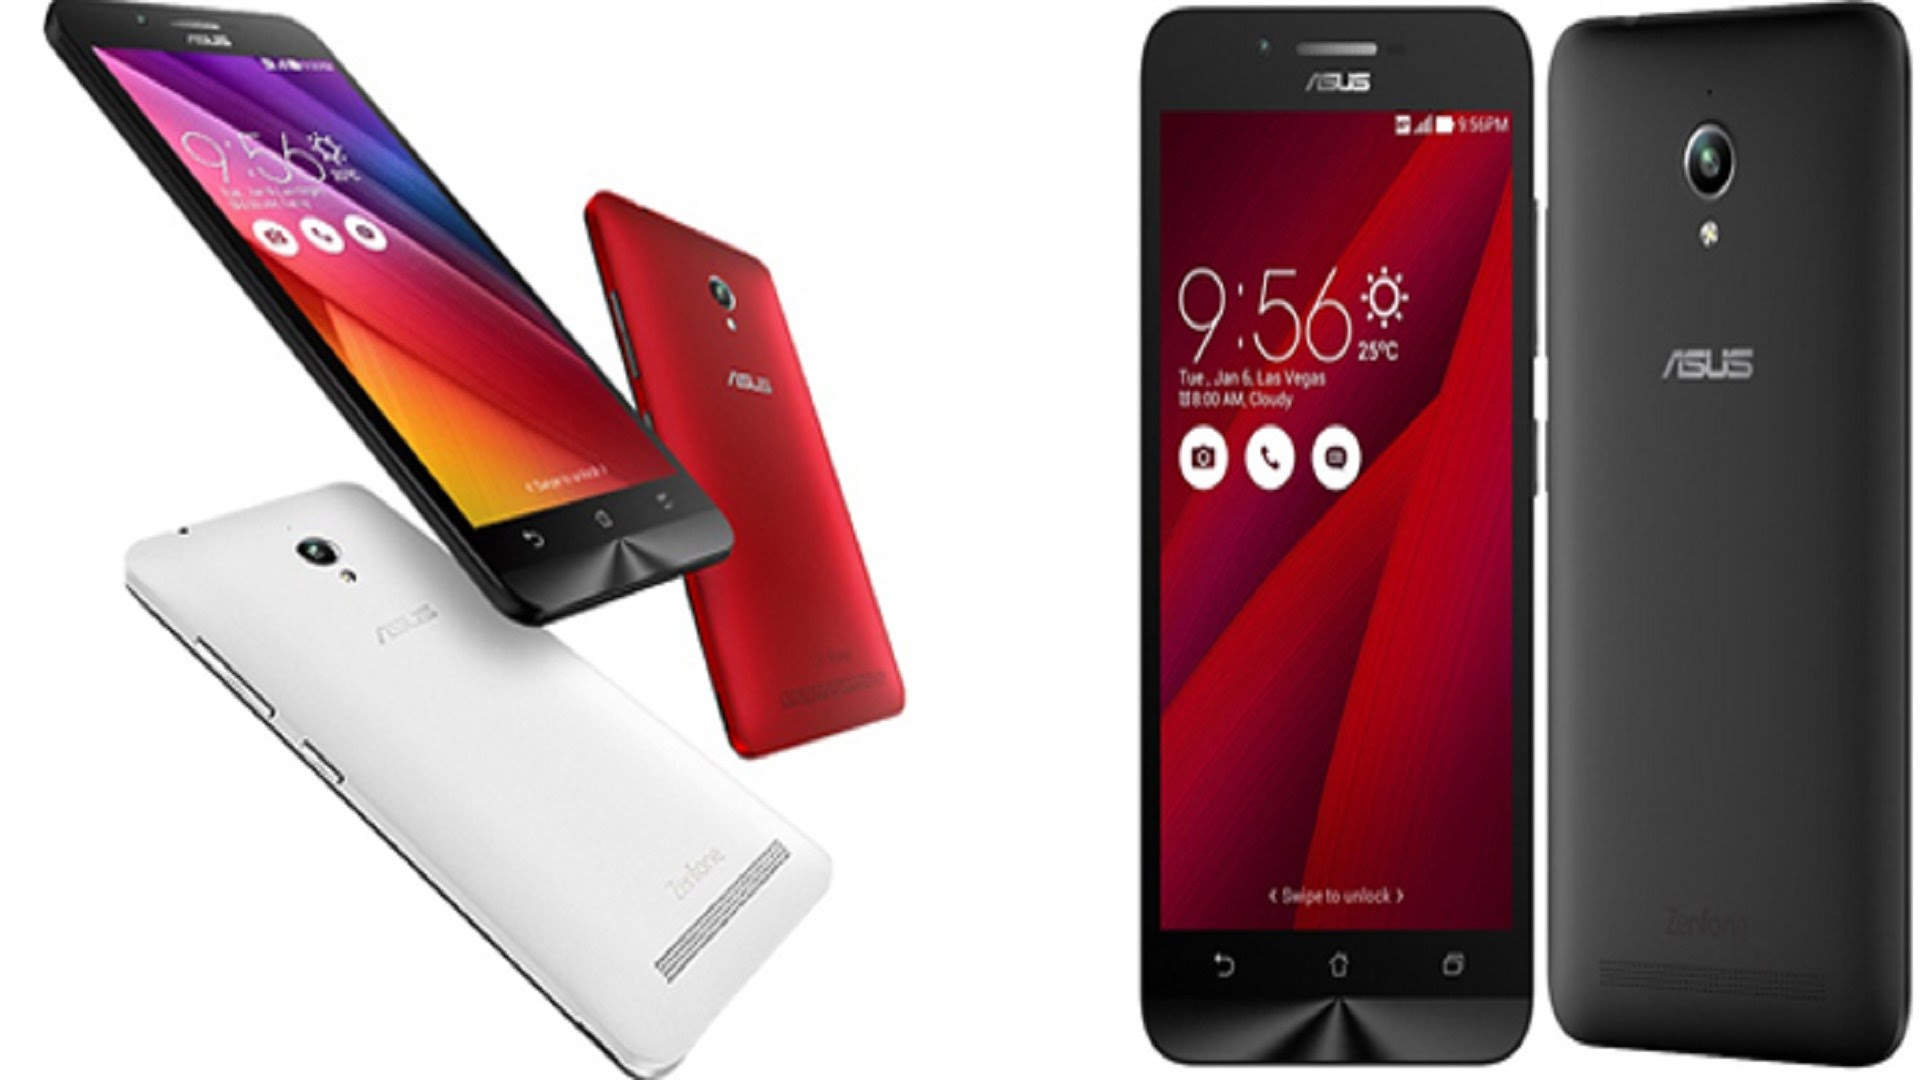 Asus Zenfone GO 4.5 with 4G LTE support launched at Rs 6999